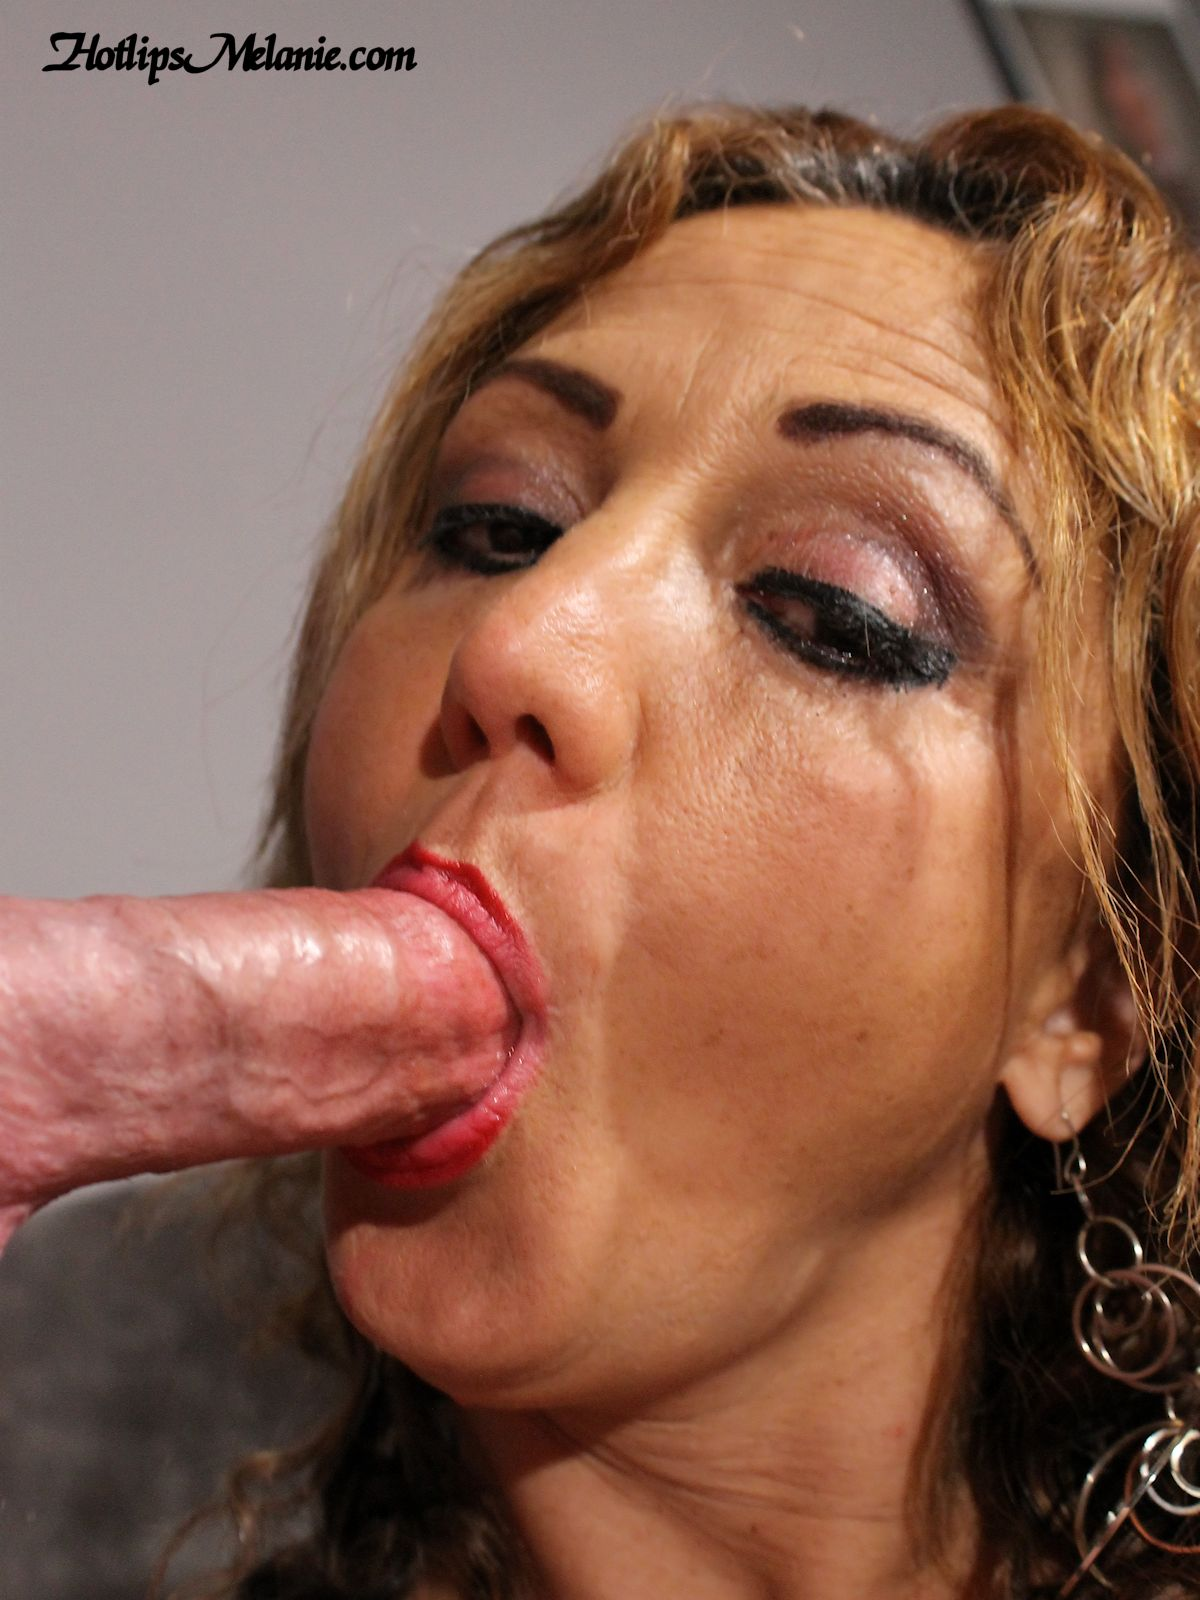 Job Moms sucking cock